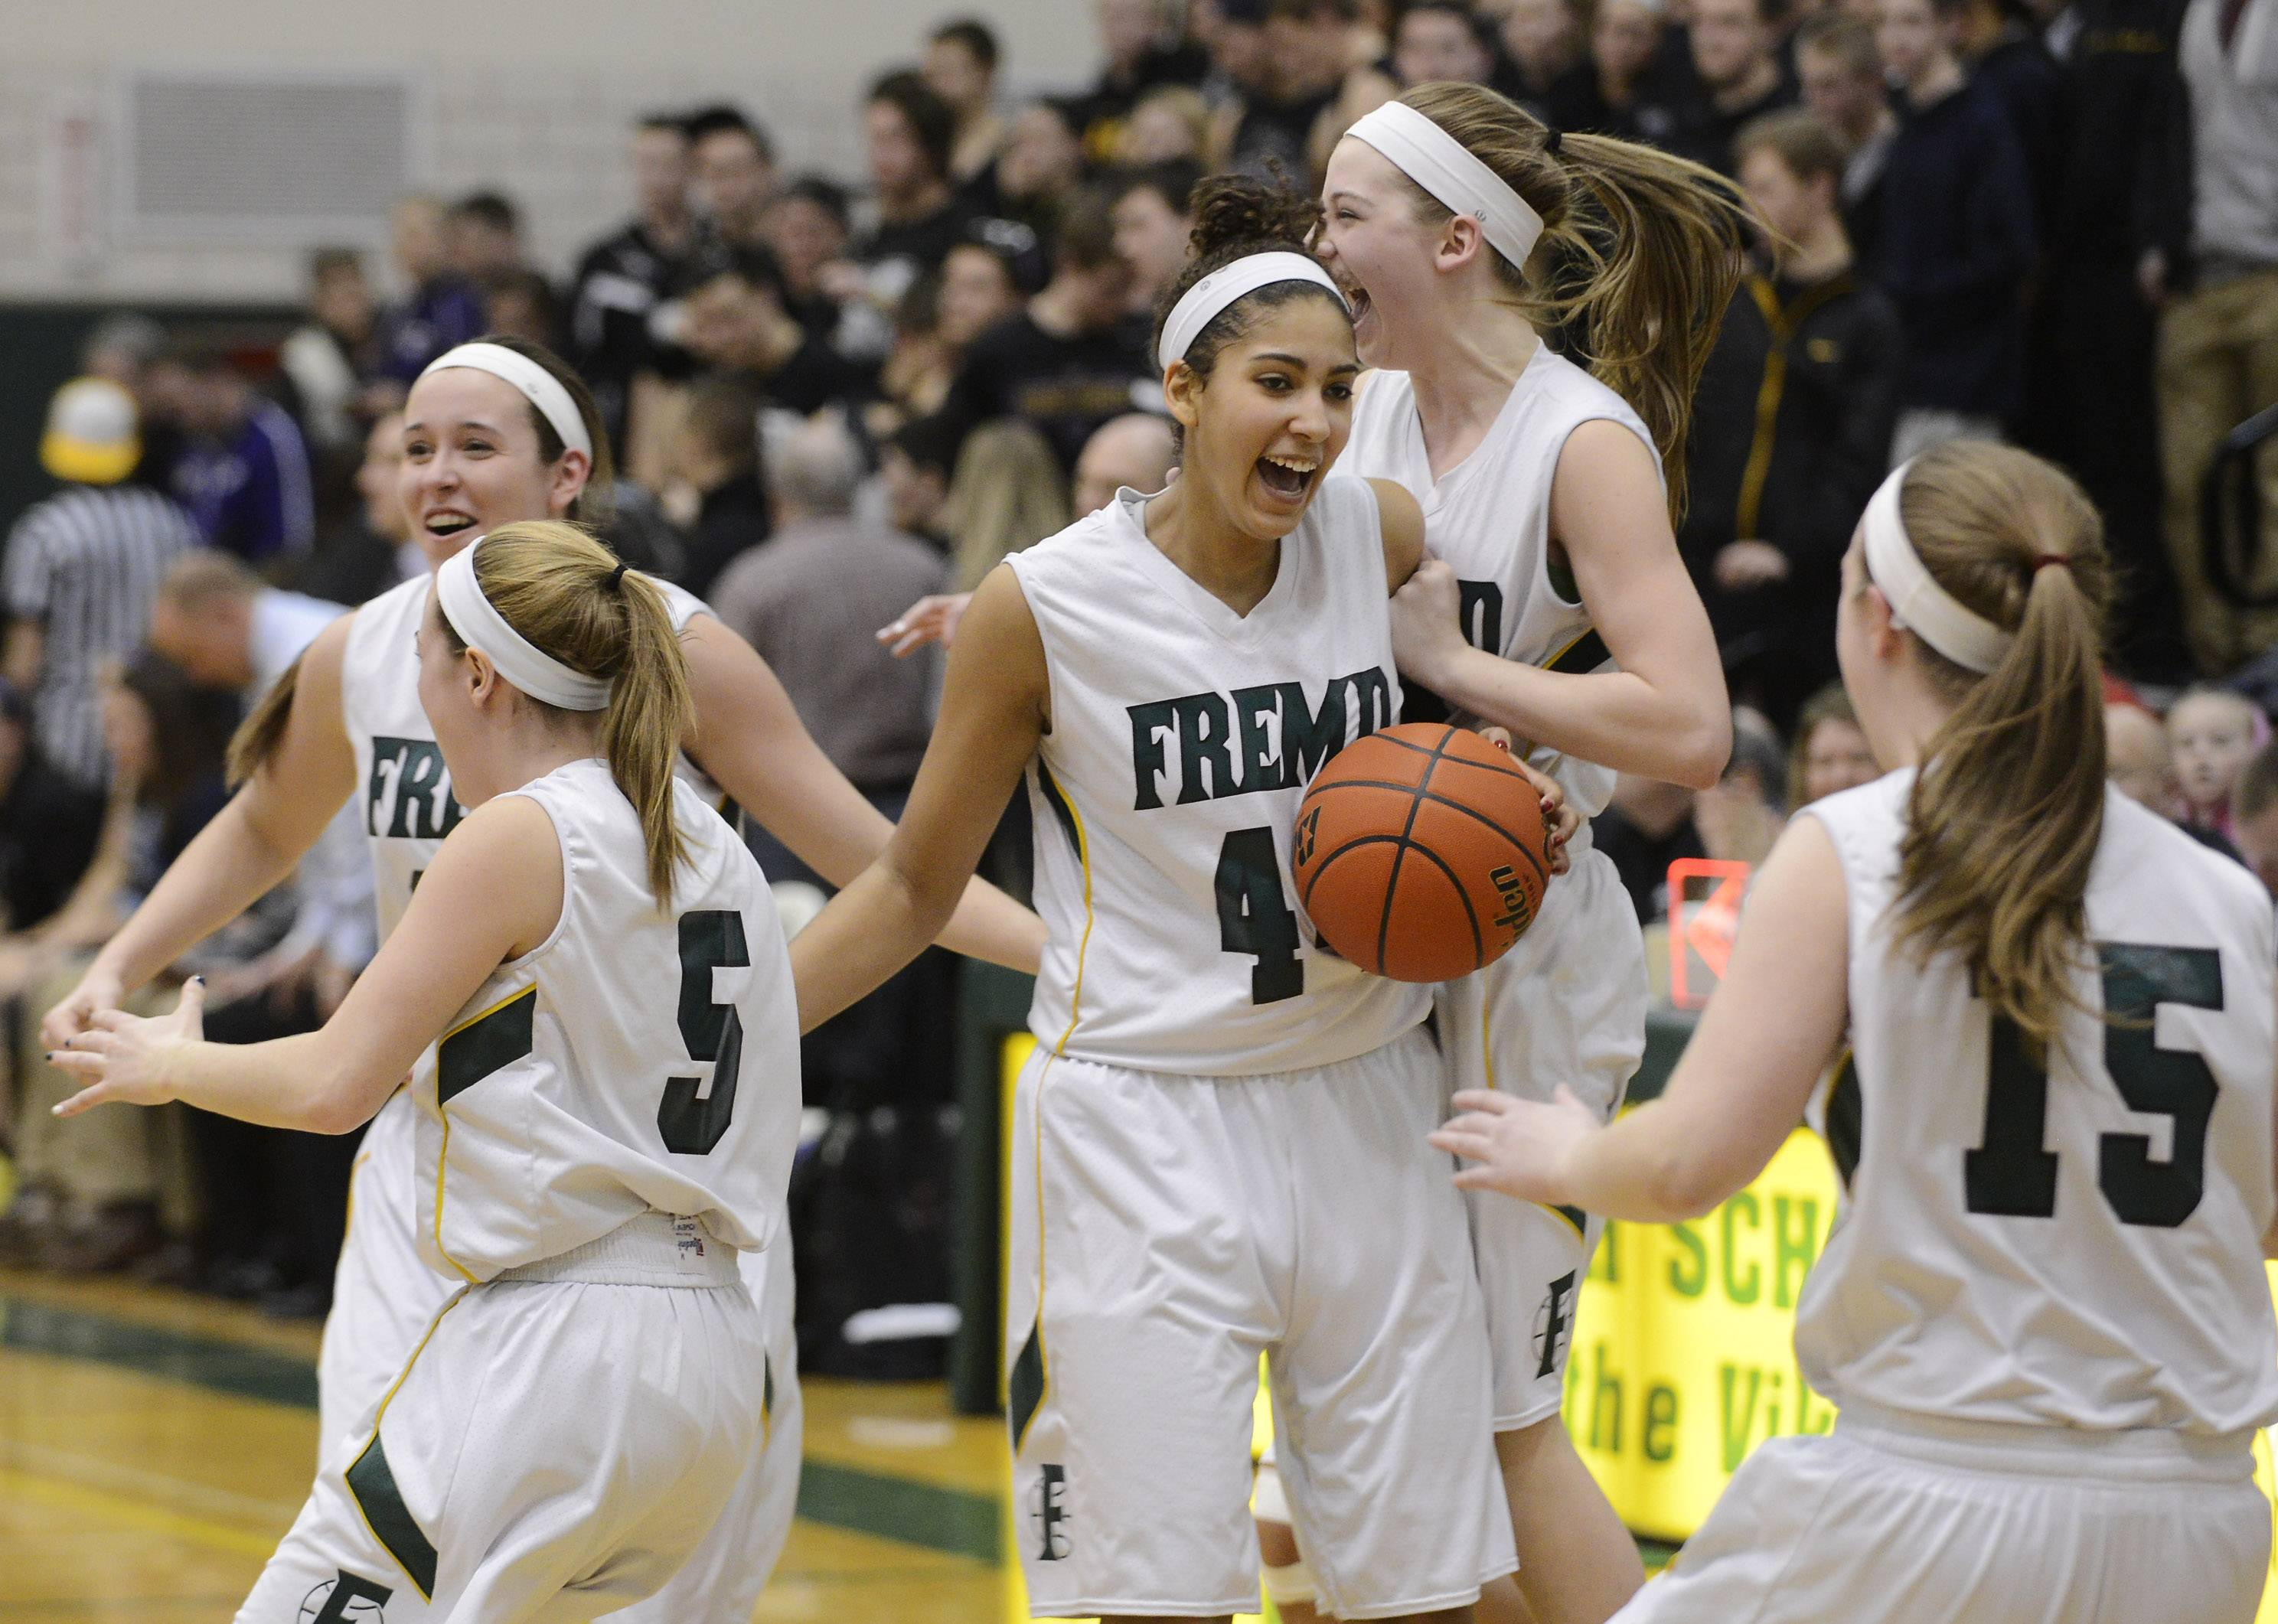 Fremd players, including Bryana Hopkins, with ball, celebrate their victory over Rolling Meadows.